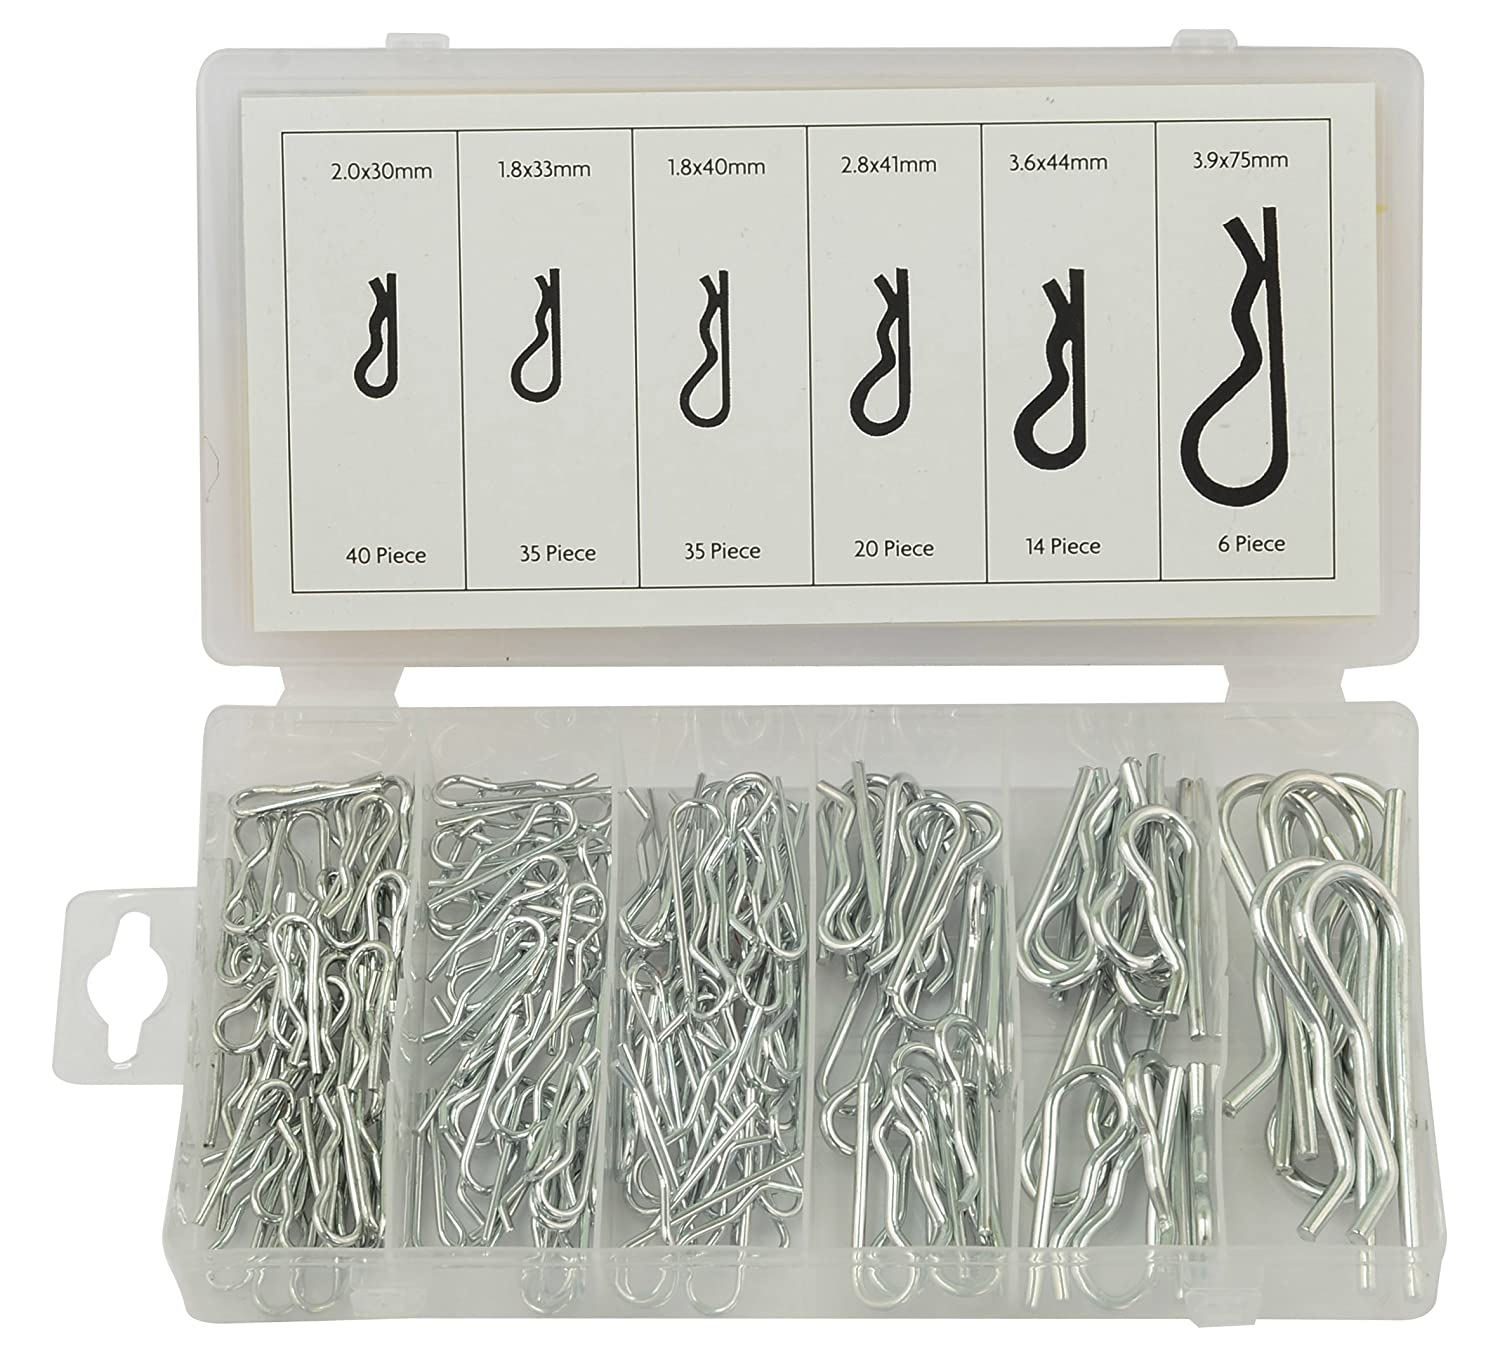 Rolson 61286 Hair Pin Assortment - 150 Pieces Rolson Tools